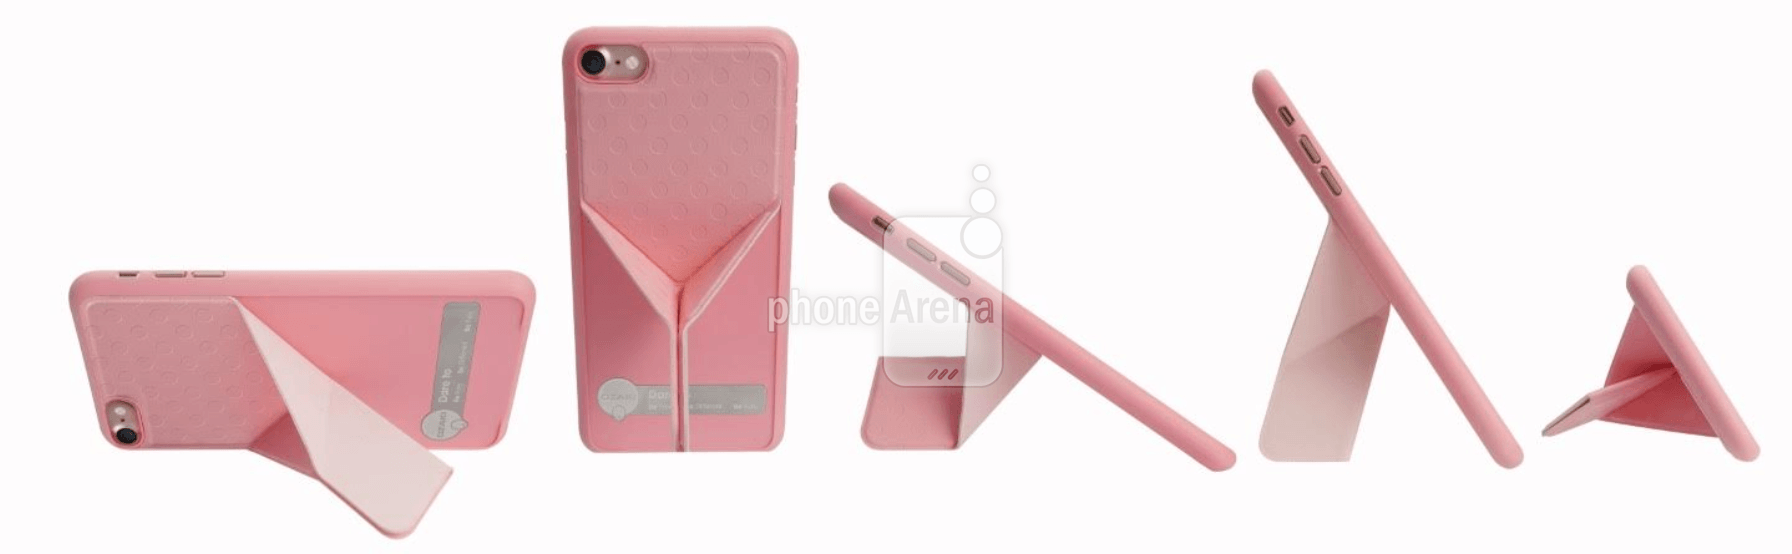 Cases-and-bumpers-for-the2016-iPhone-models-are-leaked (11)